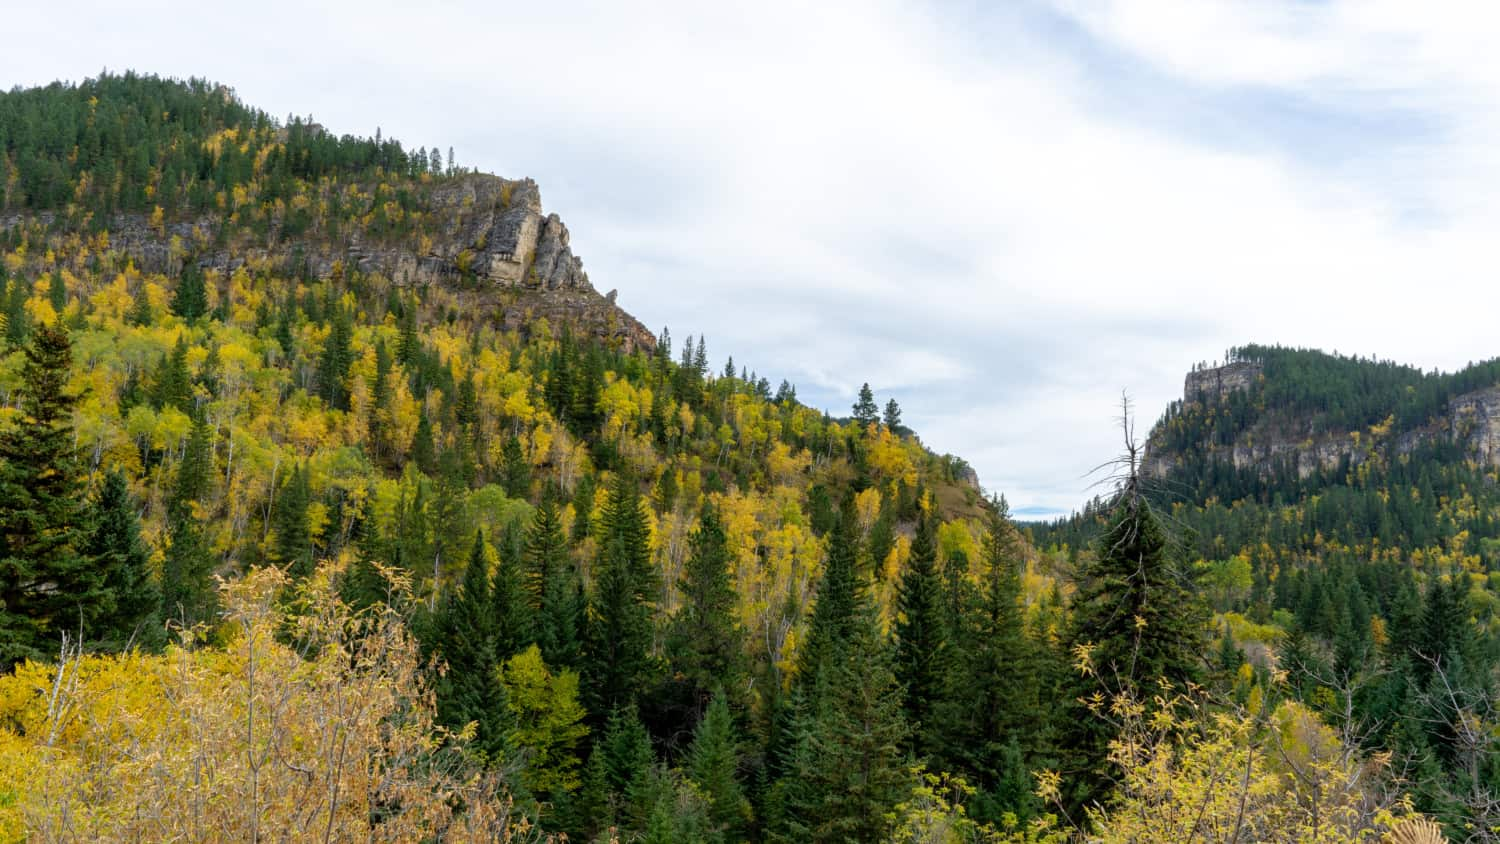 Colorful aspens and pines in Spearfish Canyon, South Dakota